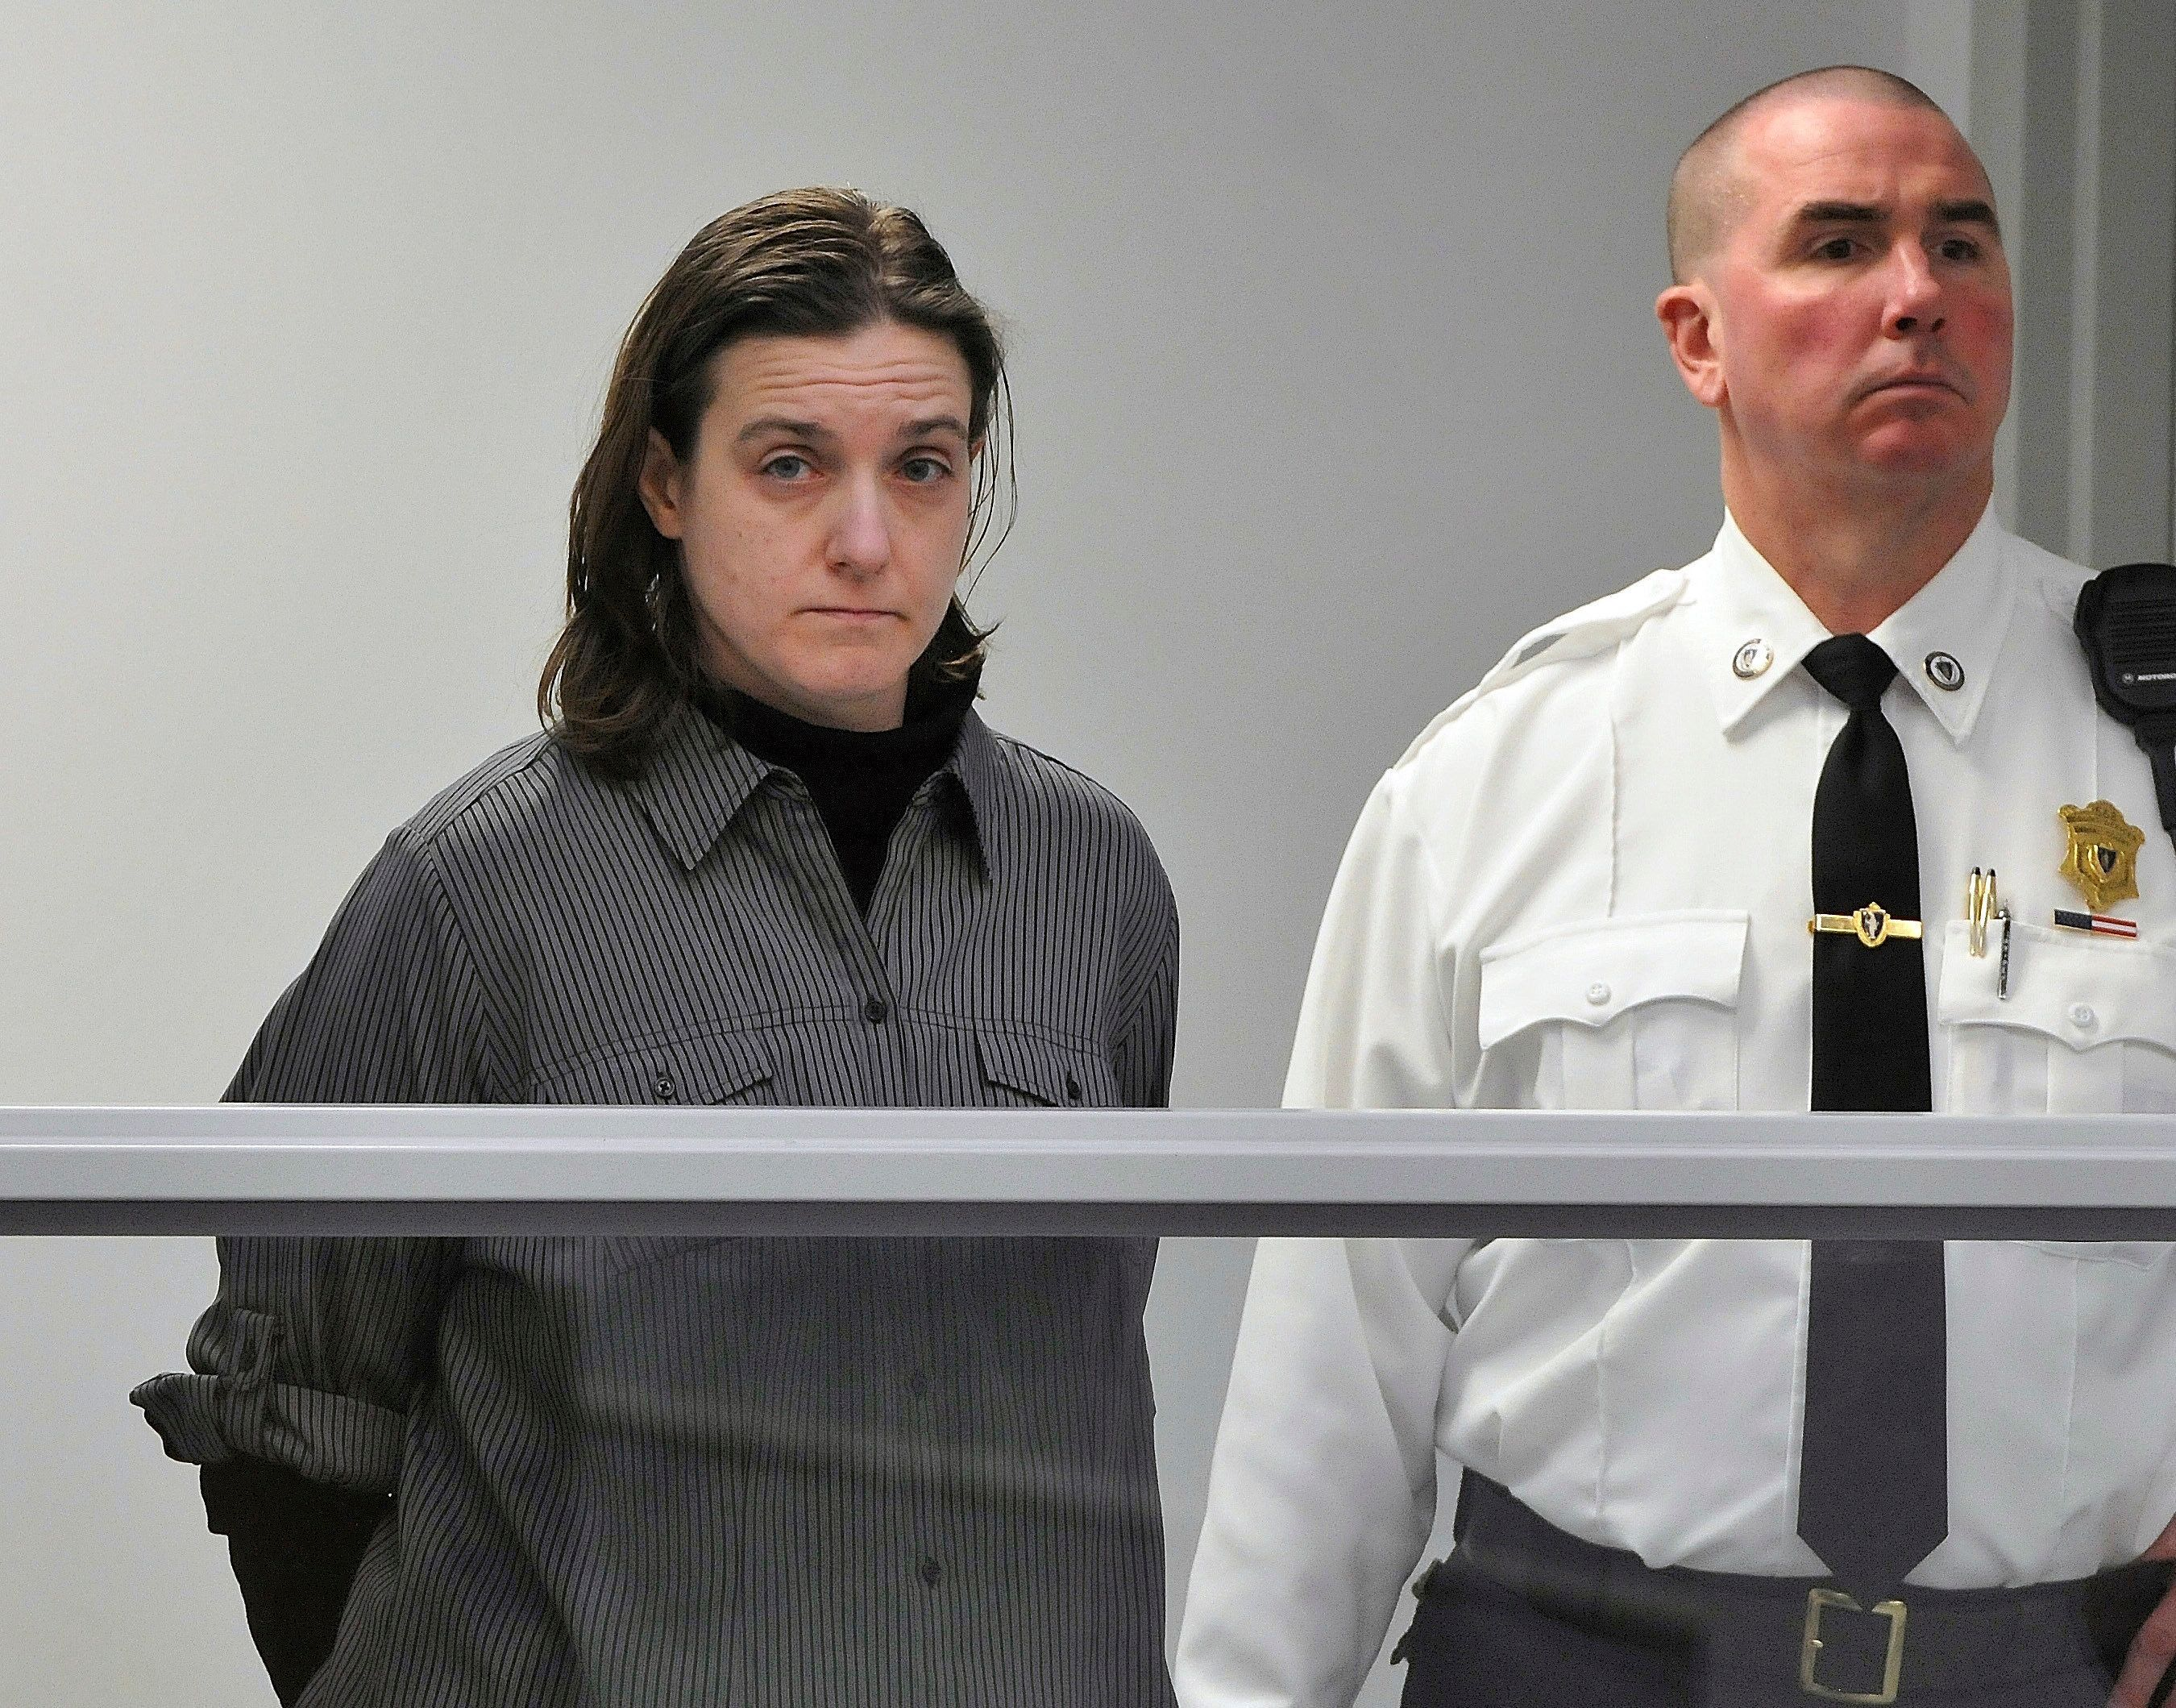 FILE - In this Jan. 22, 2013, file photo, Sonja Farak, left, stands during her arraignment at Eastern Hampshire District Court in Belchertown, Mass. The Massachusetts Supreme Judicial Court will hear arguments on Tuesday, May 8, 2018, that thousands more cases be thrown out which were potentially tainted by misconduct of former chemist Farak. Authorities have said Farak was high almost every day she worked at a state drug lab for eight years. (Don Treeger/The Republican via AP, Pool, File)